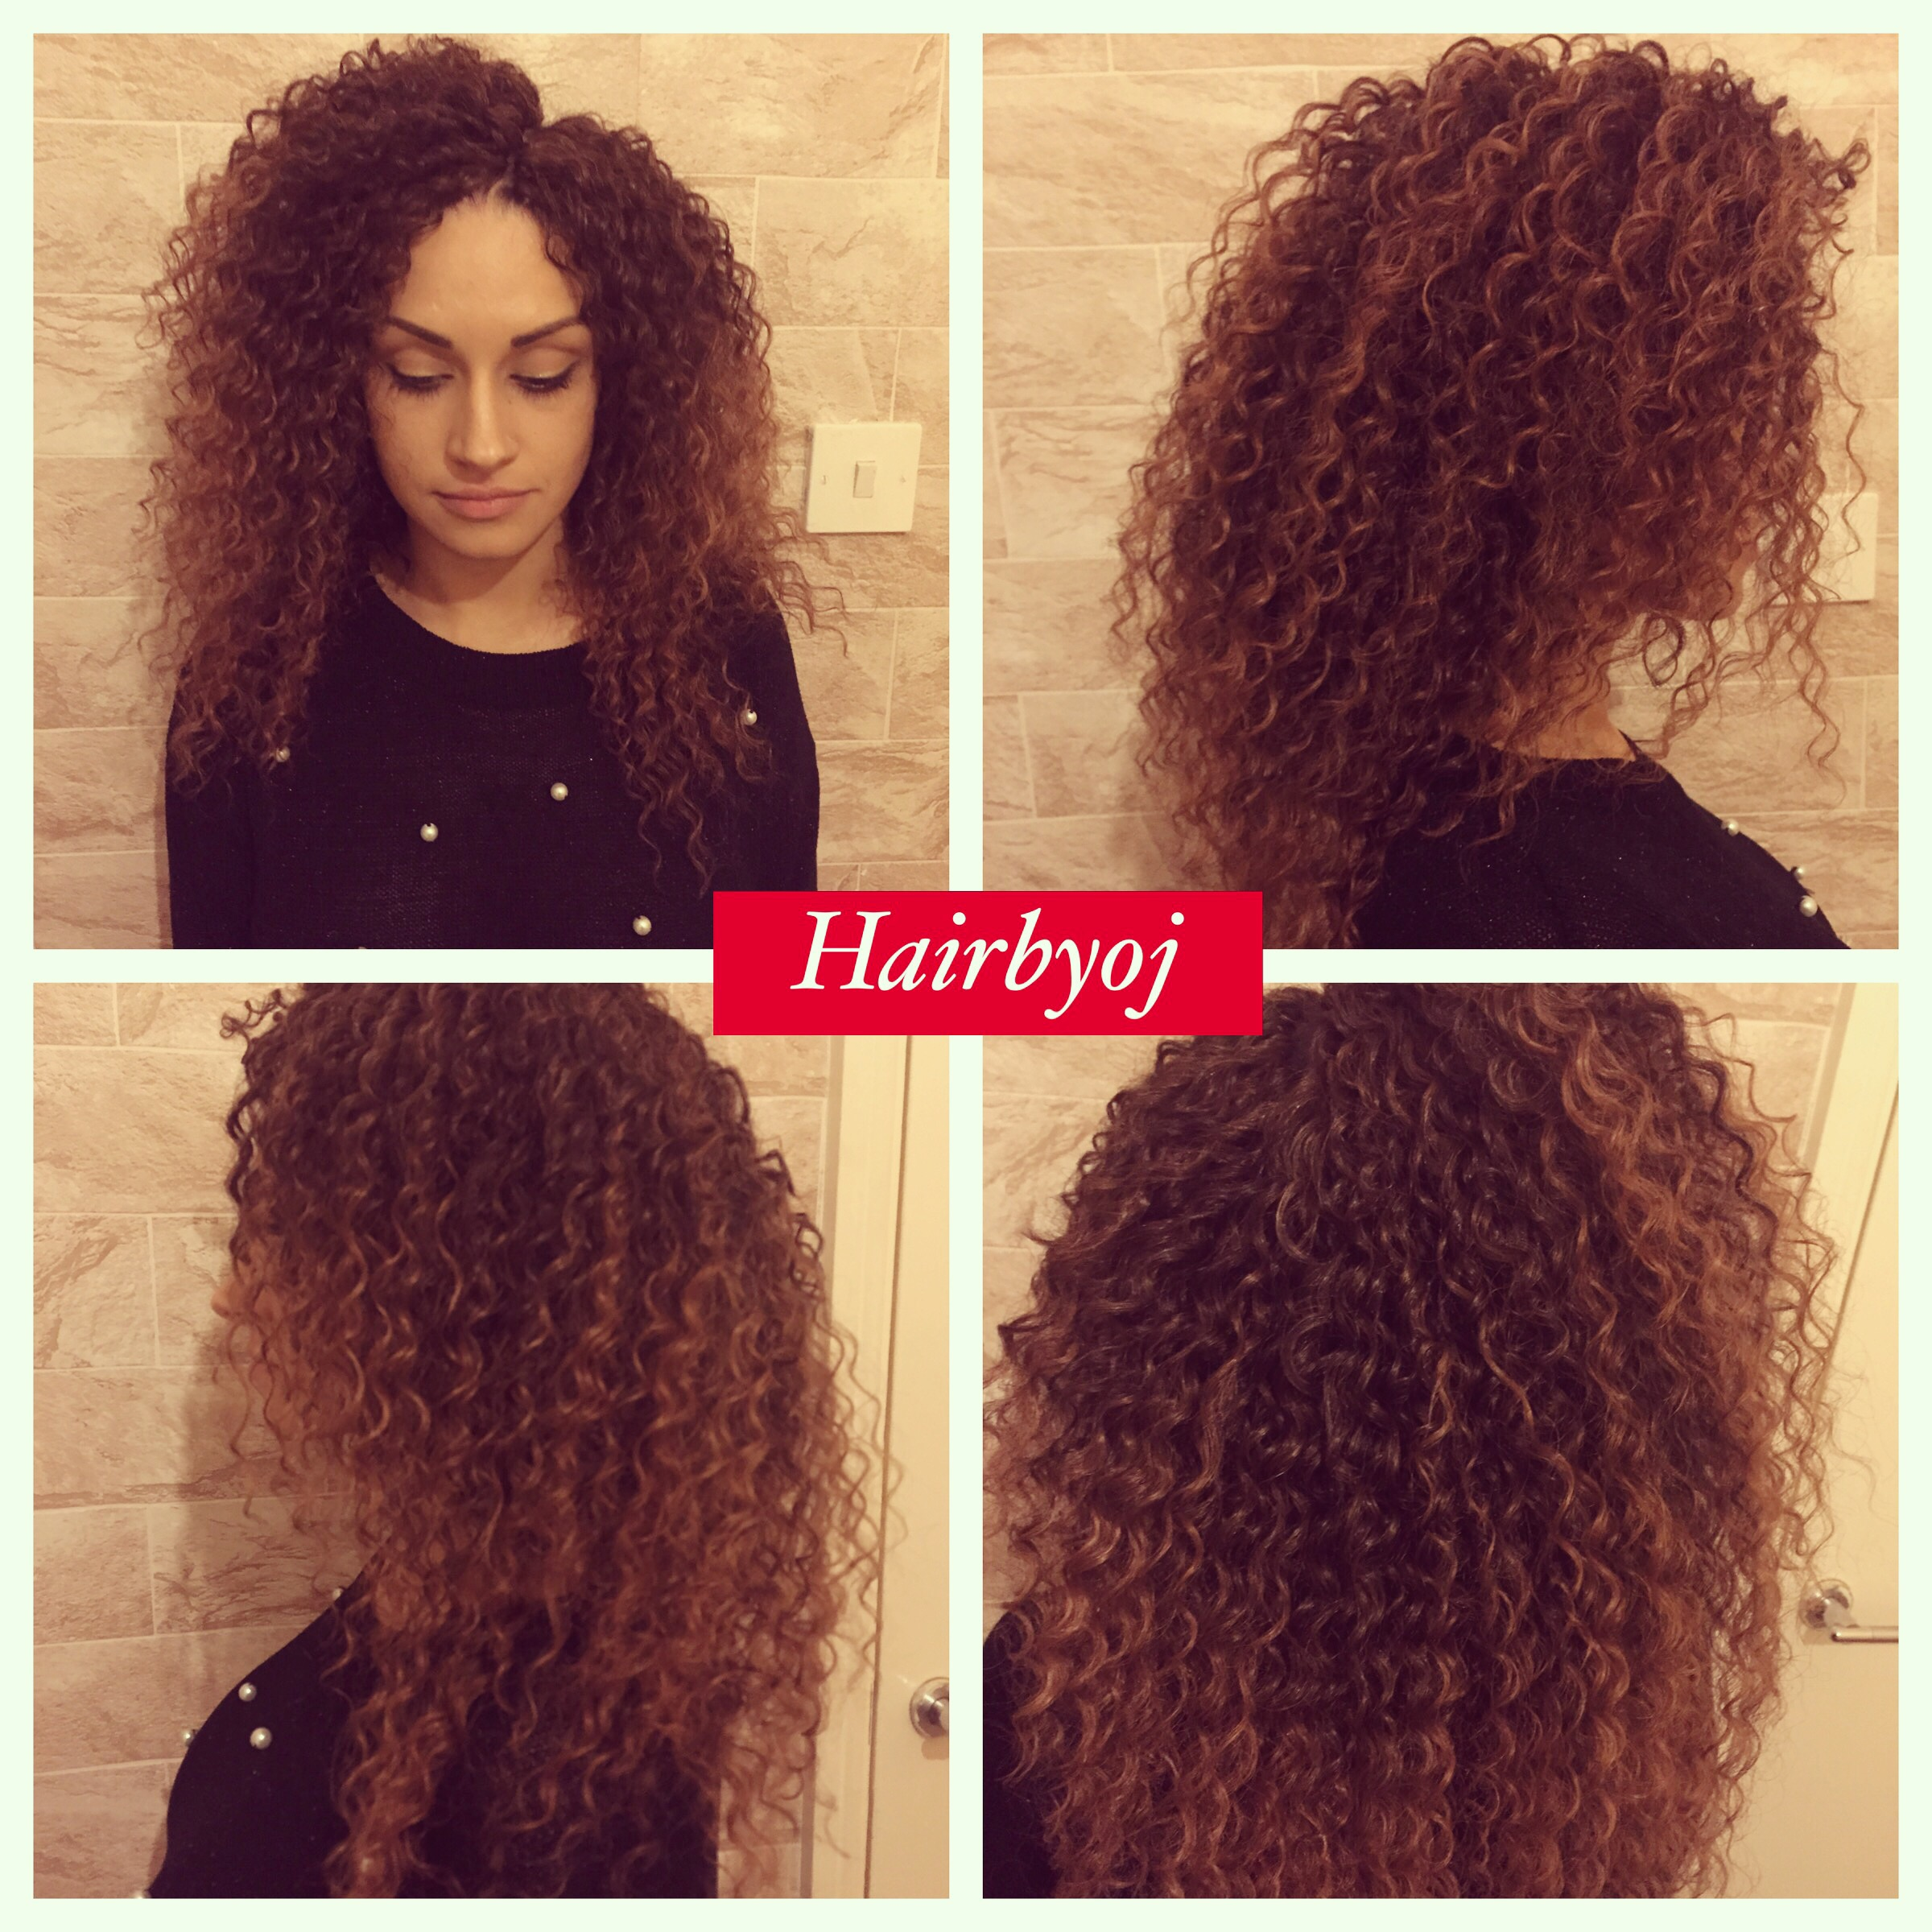 Crochet Braids Loose Hair : ... length wavy ombrE knotless crochet braids. No leave out ? hairbyoj